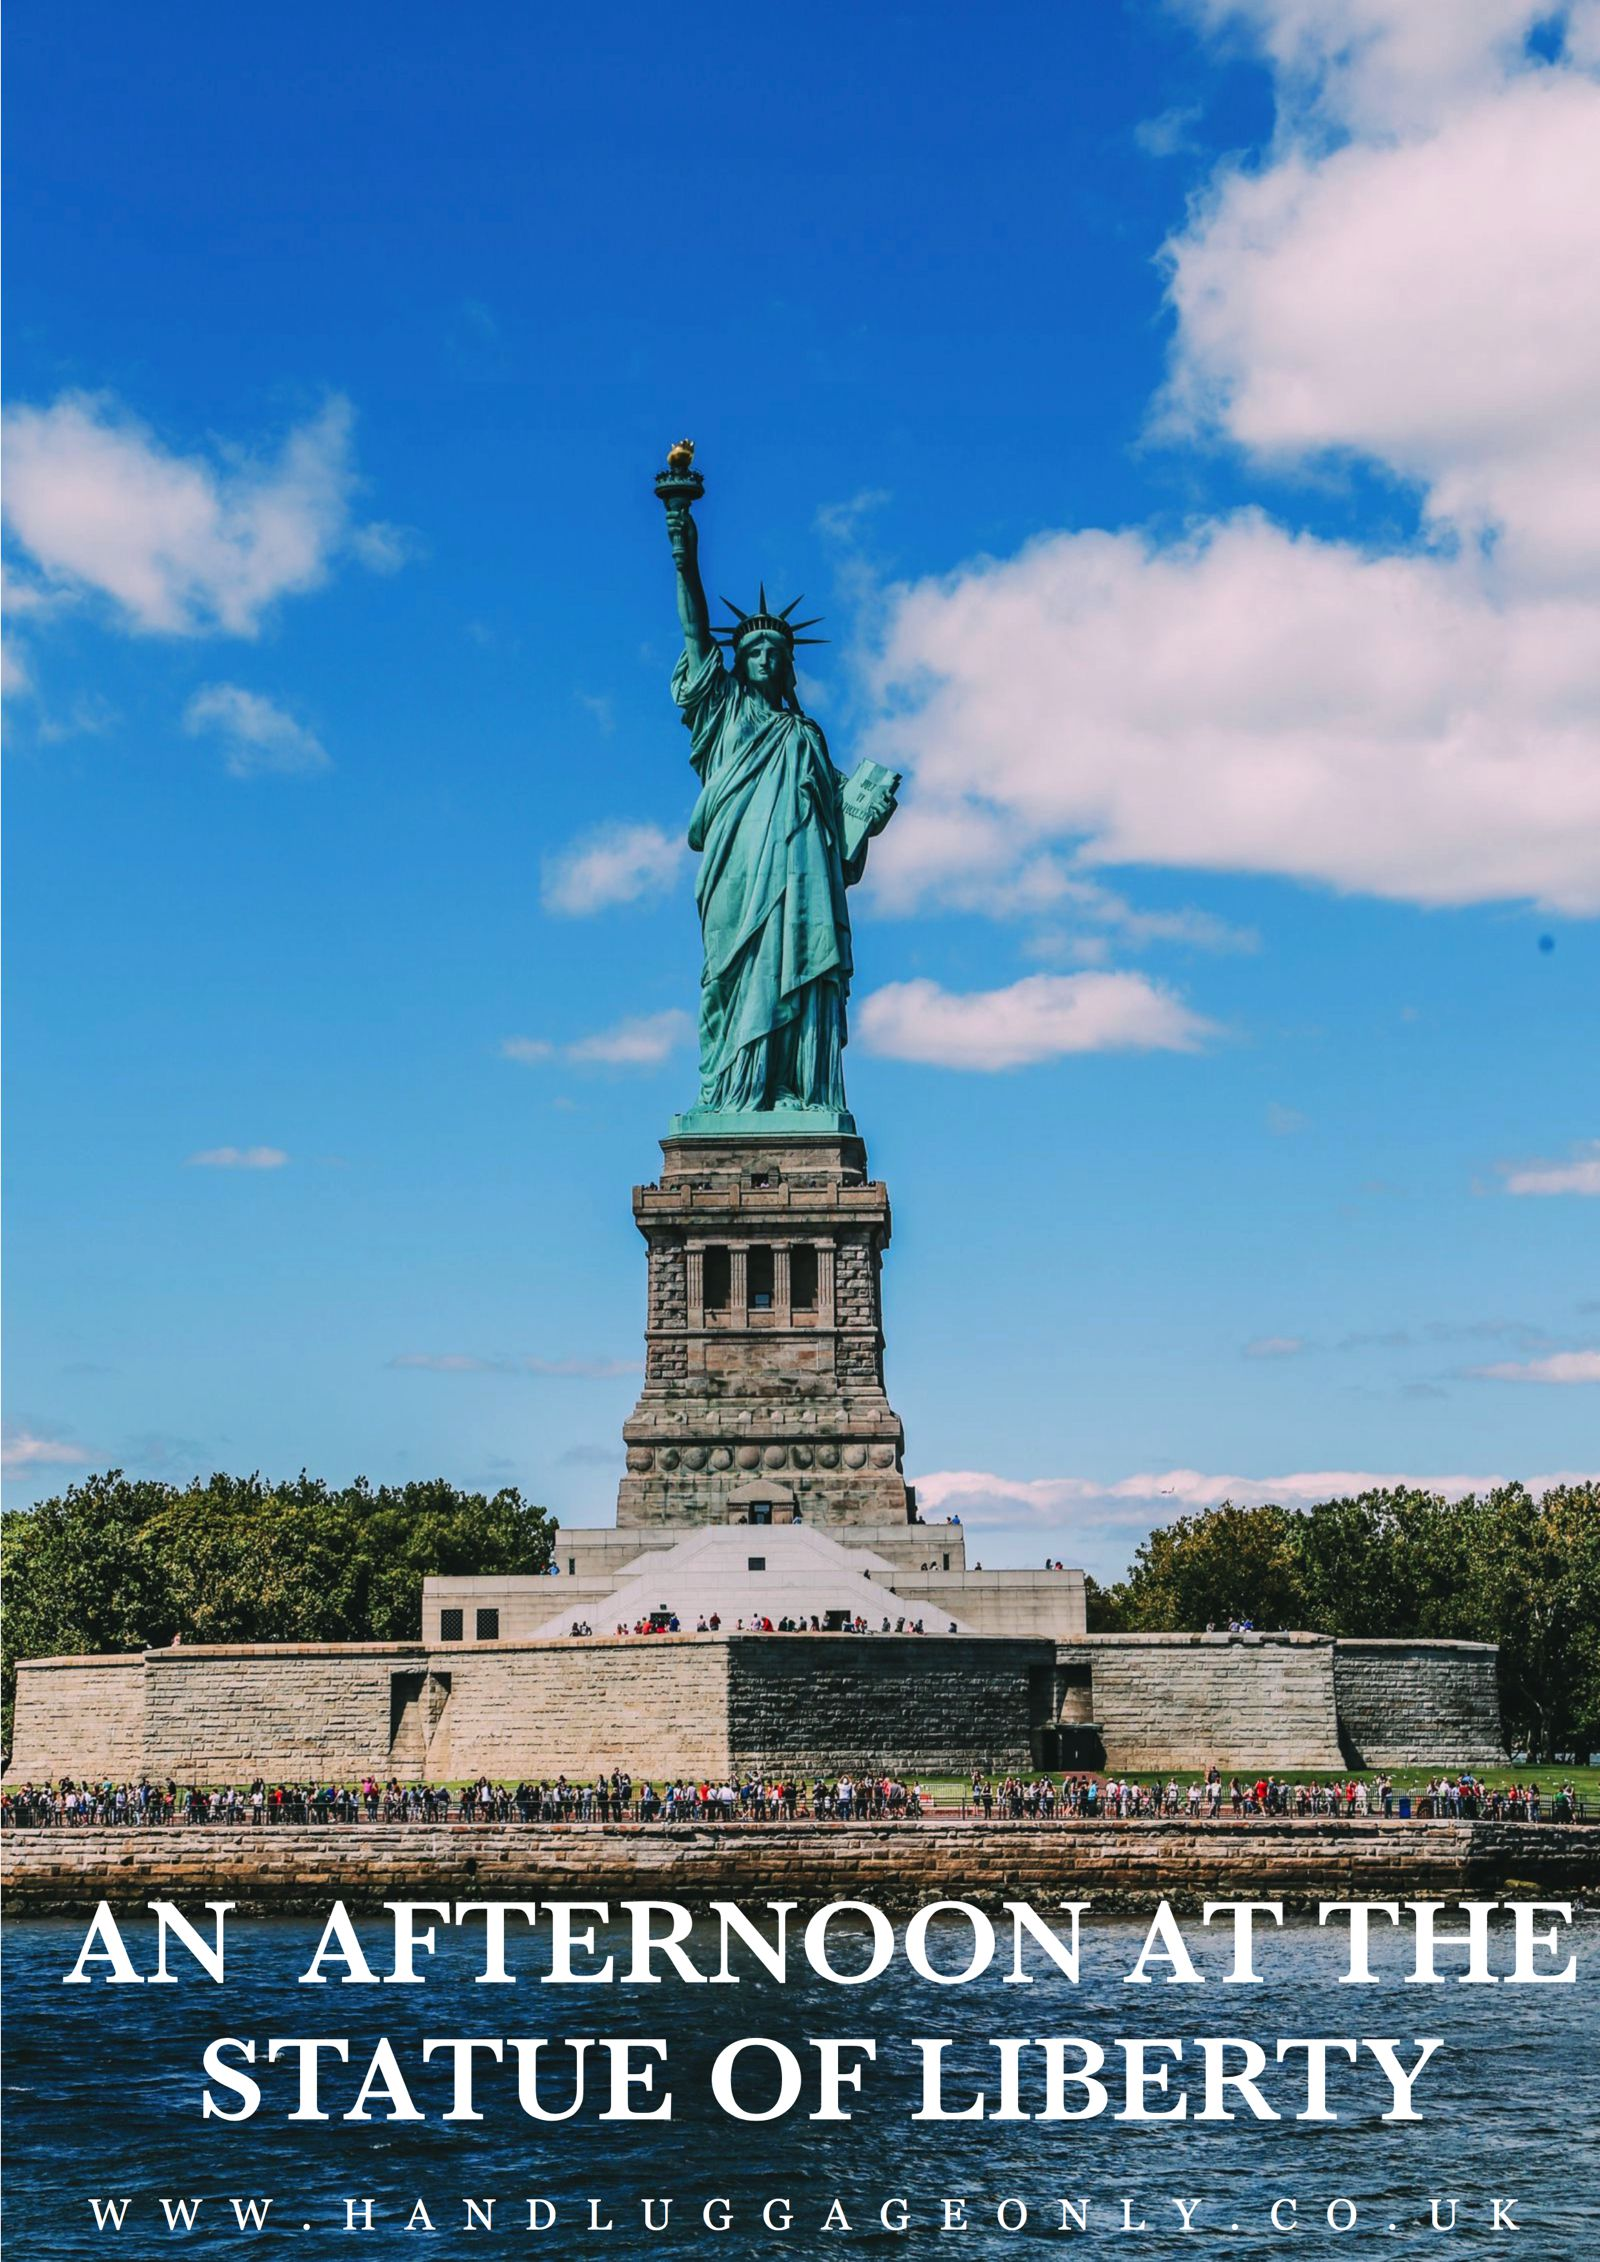 AN AFTERNOON AT THE STATUE OF LIBERTY